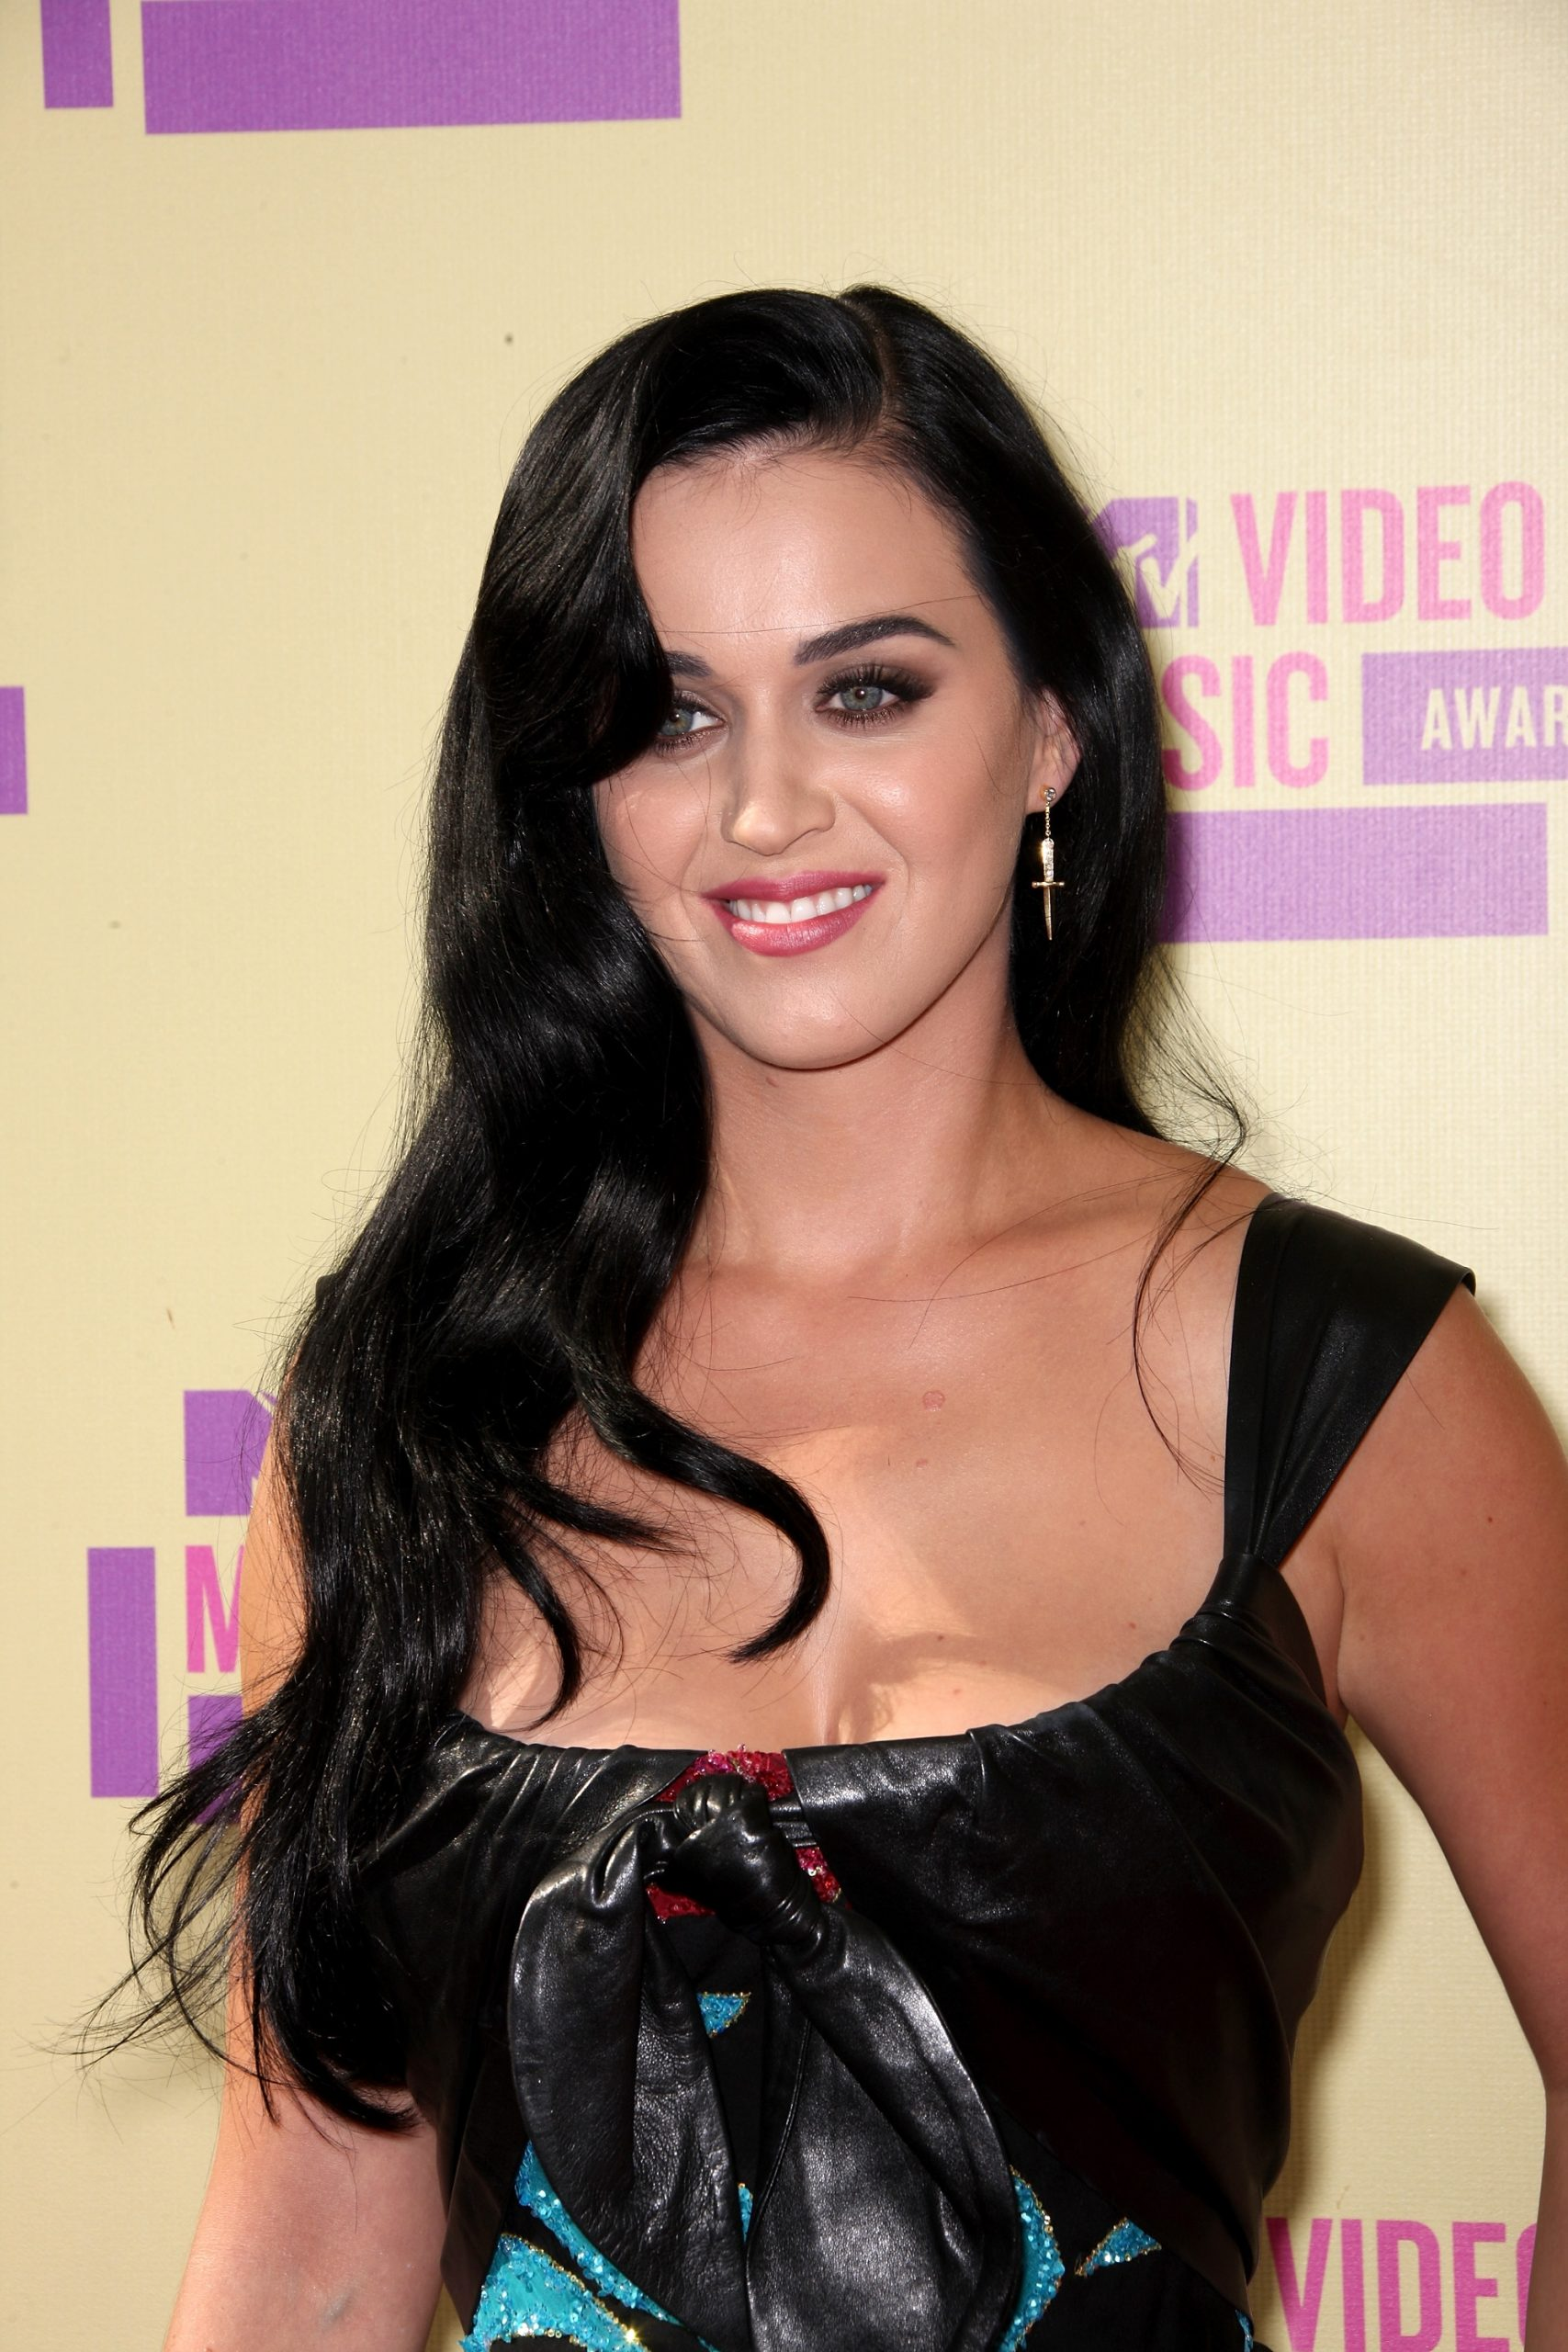 Before: Katy Perry